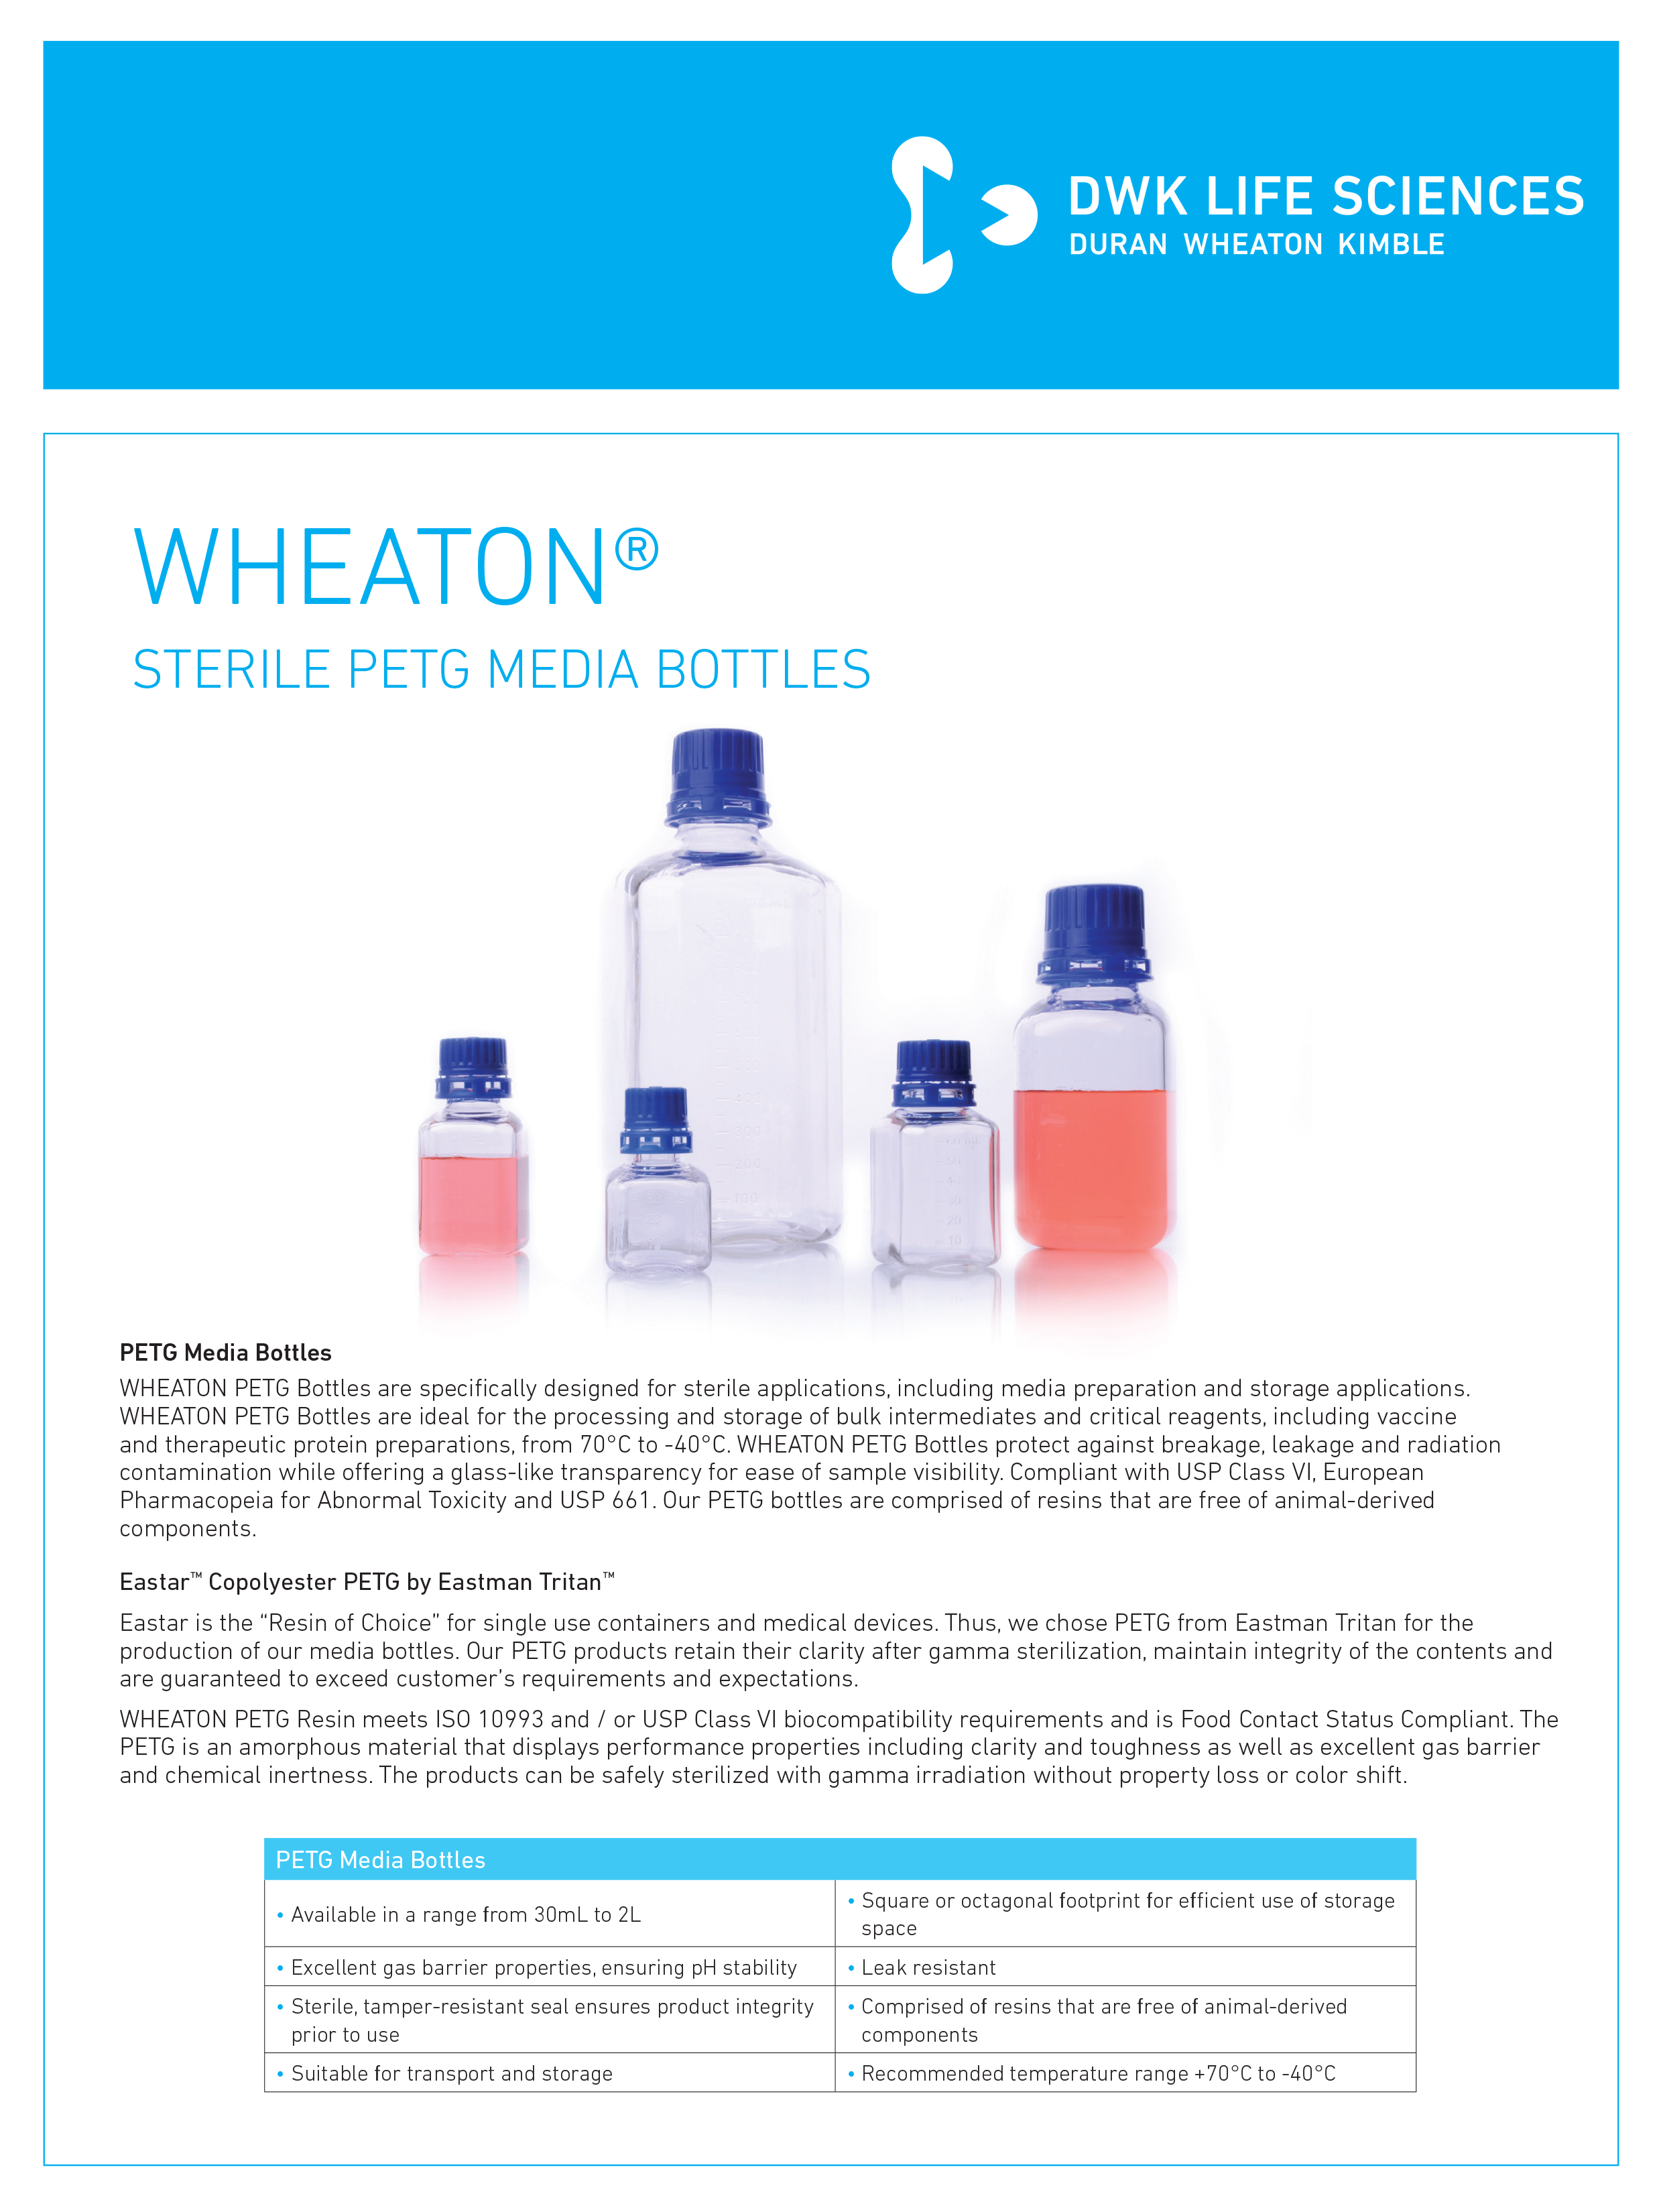 WHEATON® Sterile PETG Media Bottles Flyer